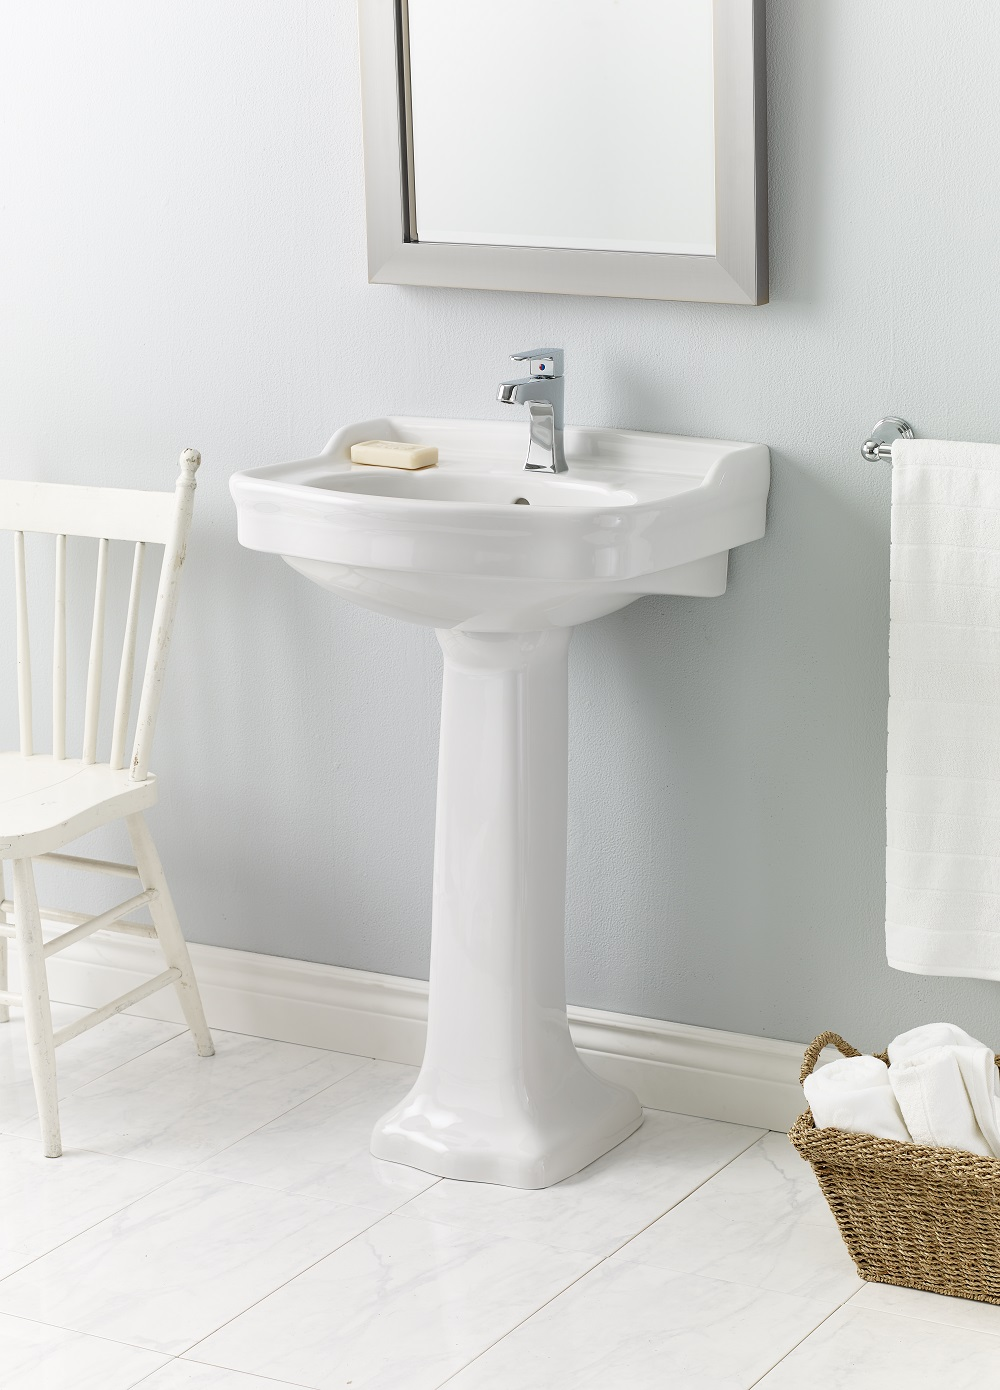 Picture of: Cheviot Antique Pedestal Bathroom Sink 22 1 2 X 18 1 2 White Lowe S Canada